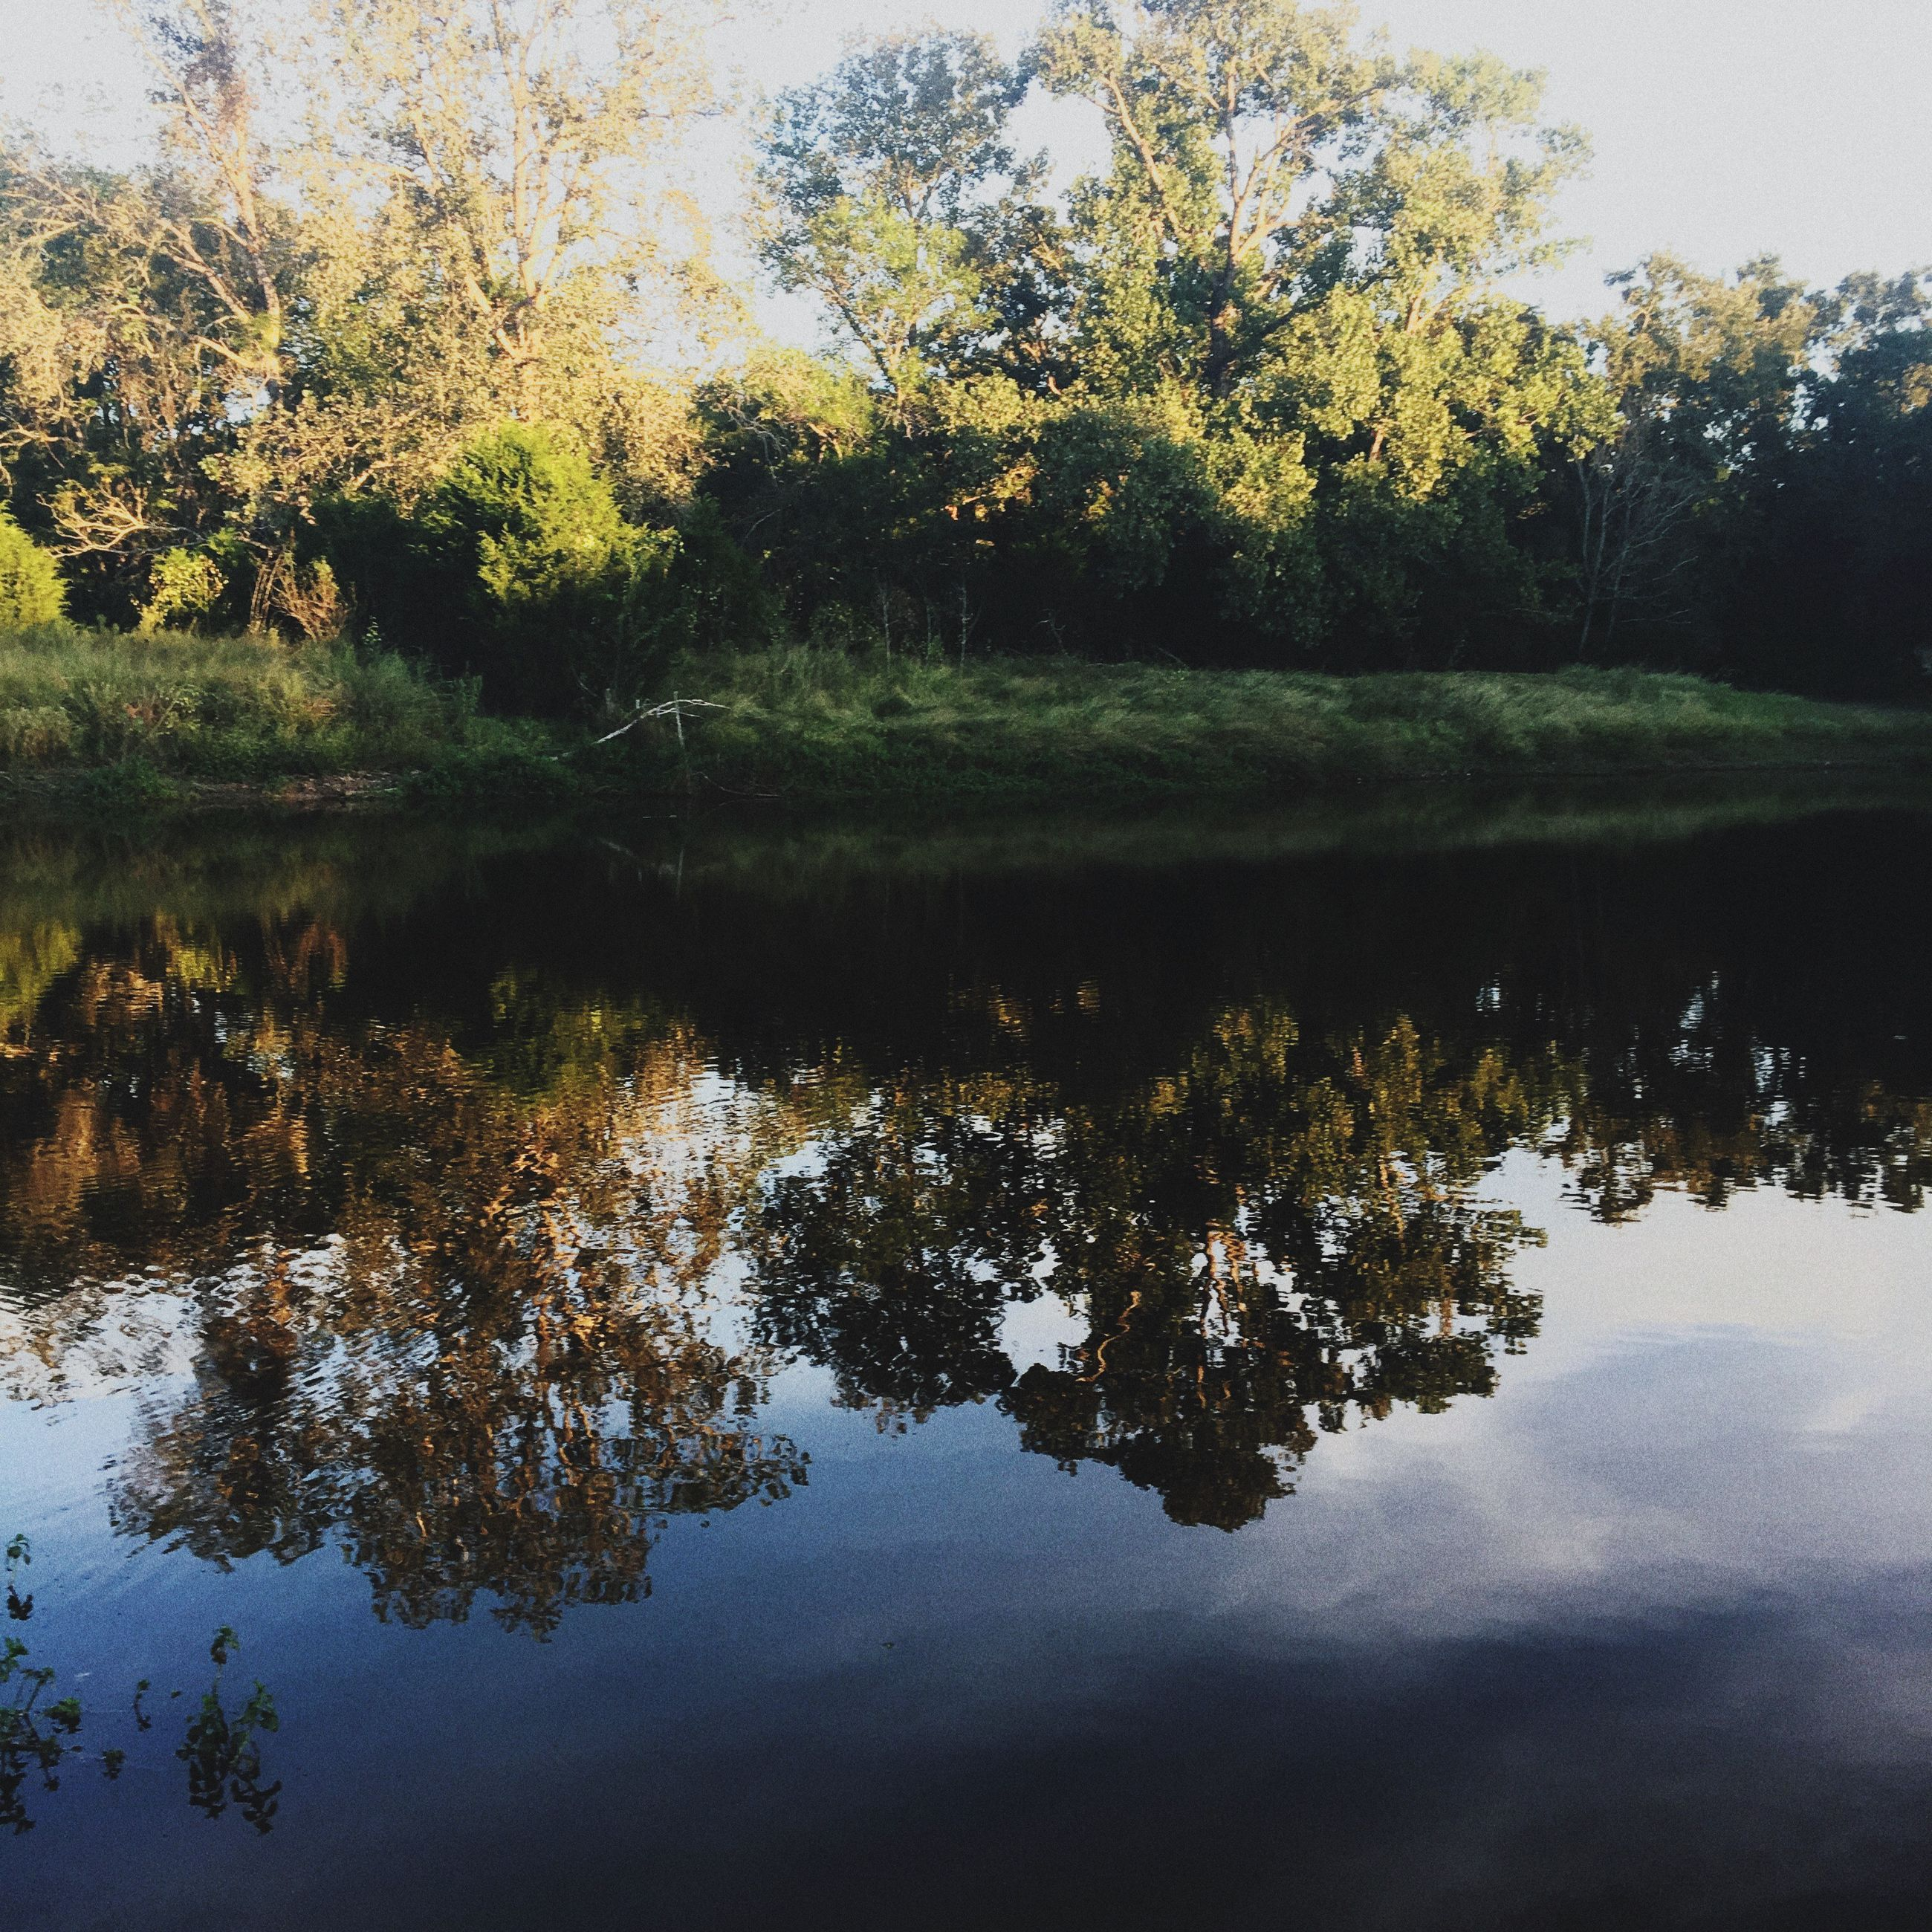 reflection, water, lake, nature, tree, standing water, beauty in nature, tranquility, tranquil scene, scenics, outdoors, waterfront, no people, sky, day, growth, forest